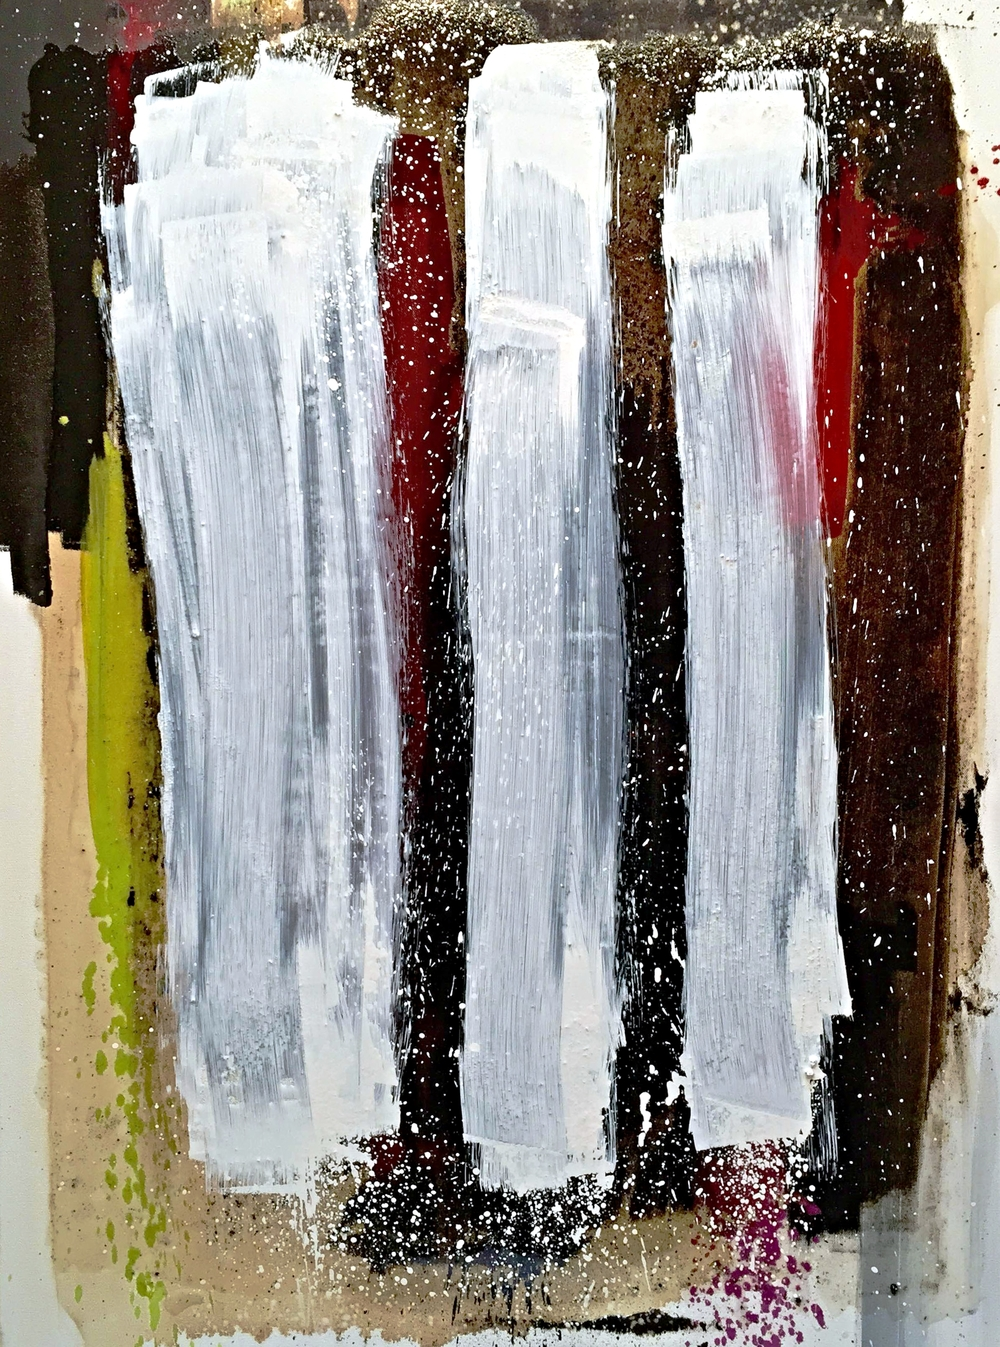 Divergence XXXI - Oil, asphalt, resin on canvas / 30 x 40 inches